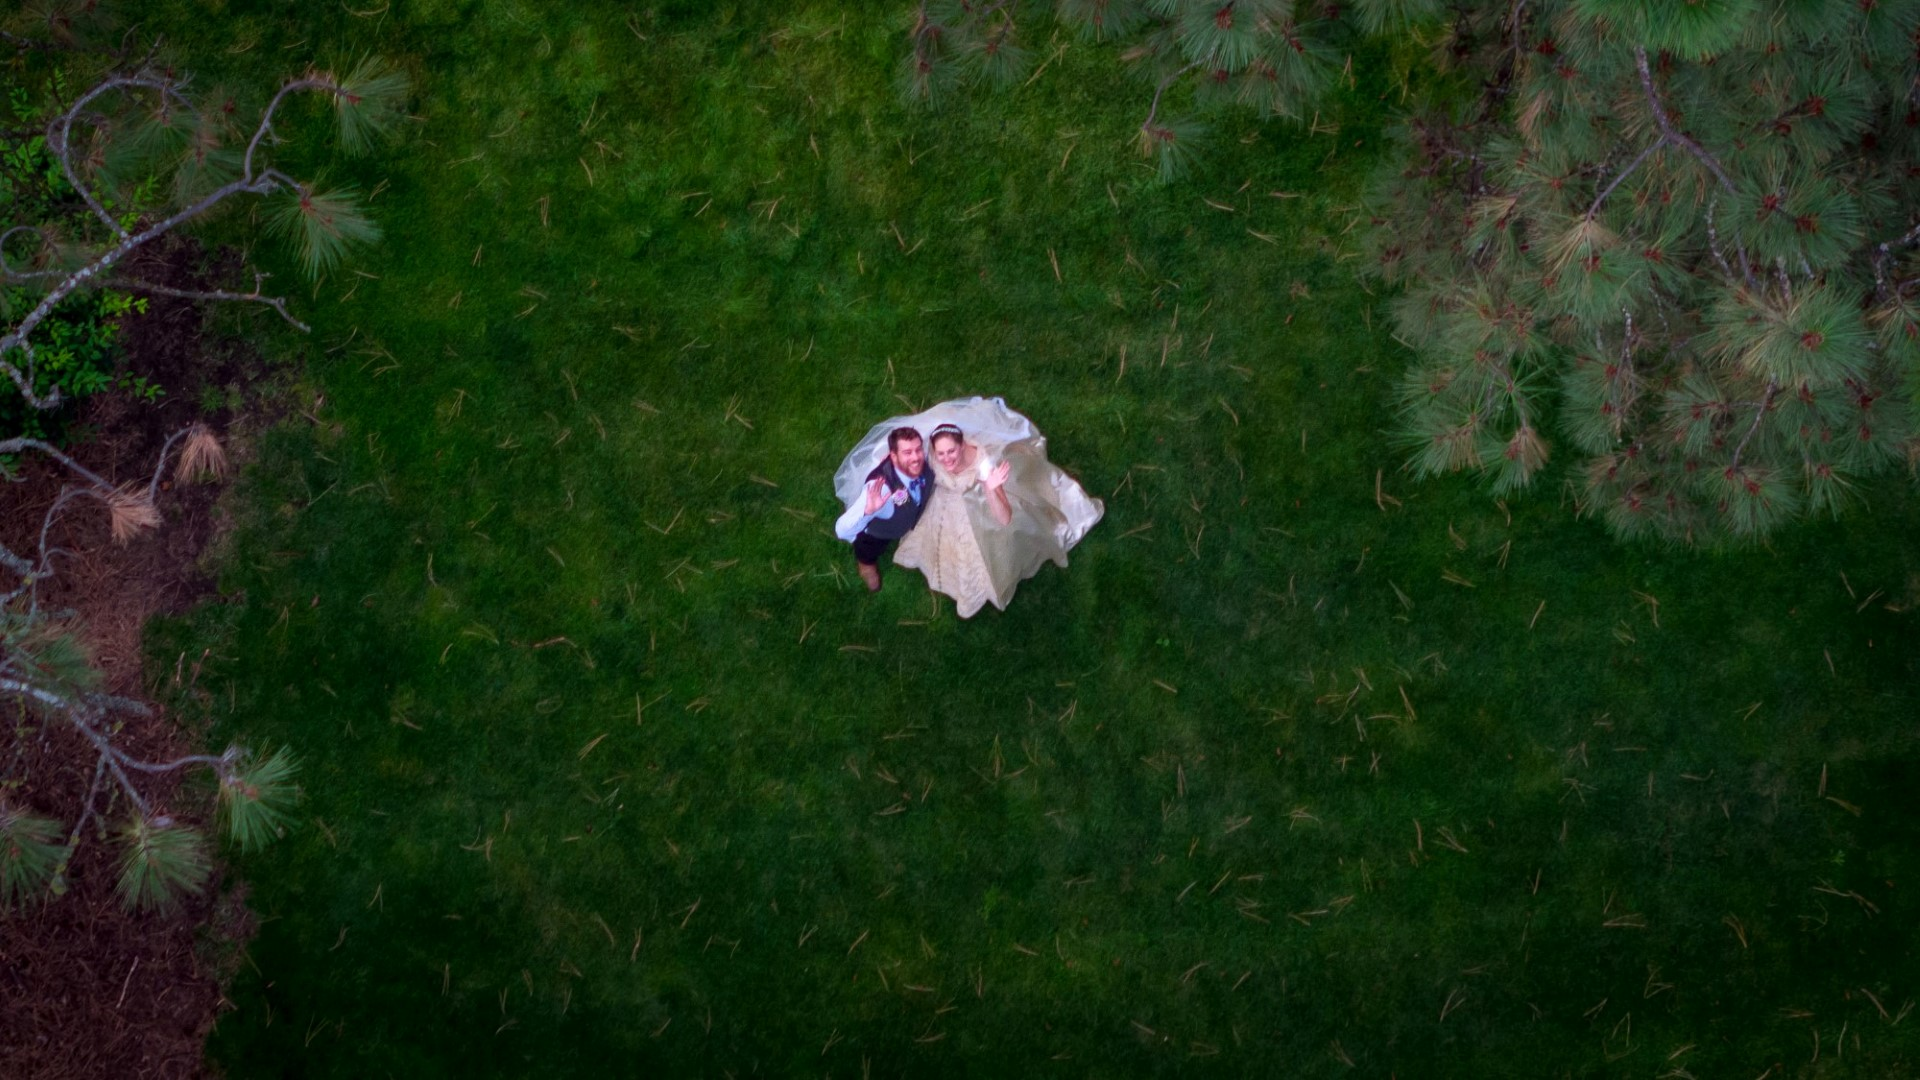 Juell Wedding Drone Photography Spokane Drone